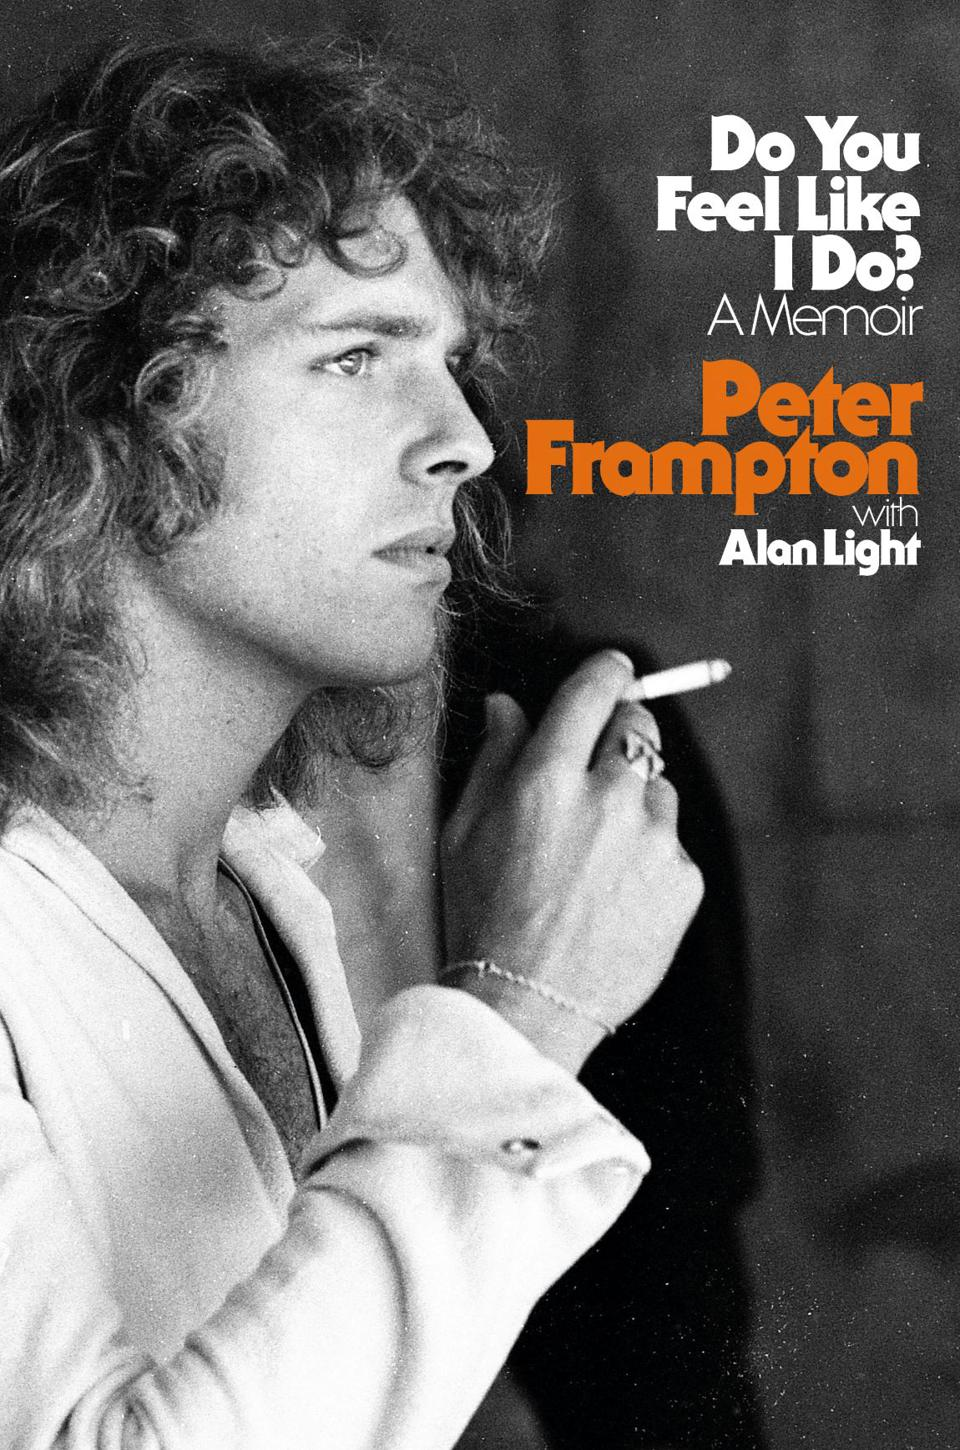 Cover of 'Do You Feel Like I Do?' by Peter Frampton with Alan Light.